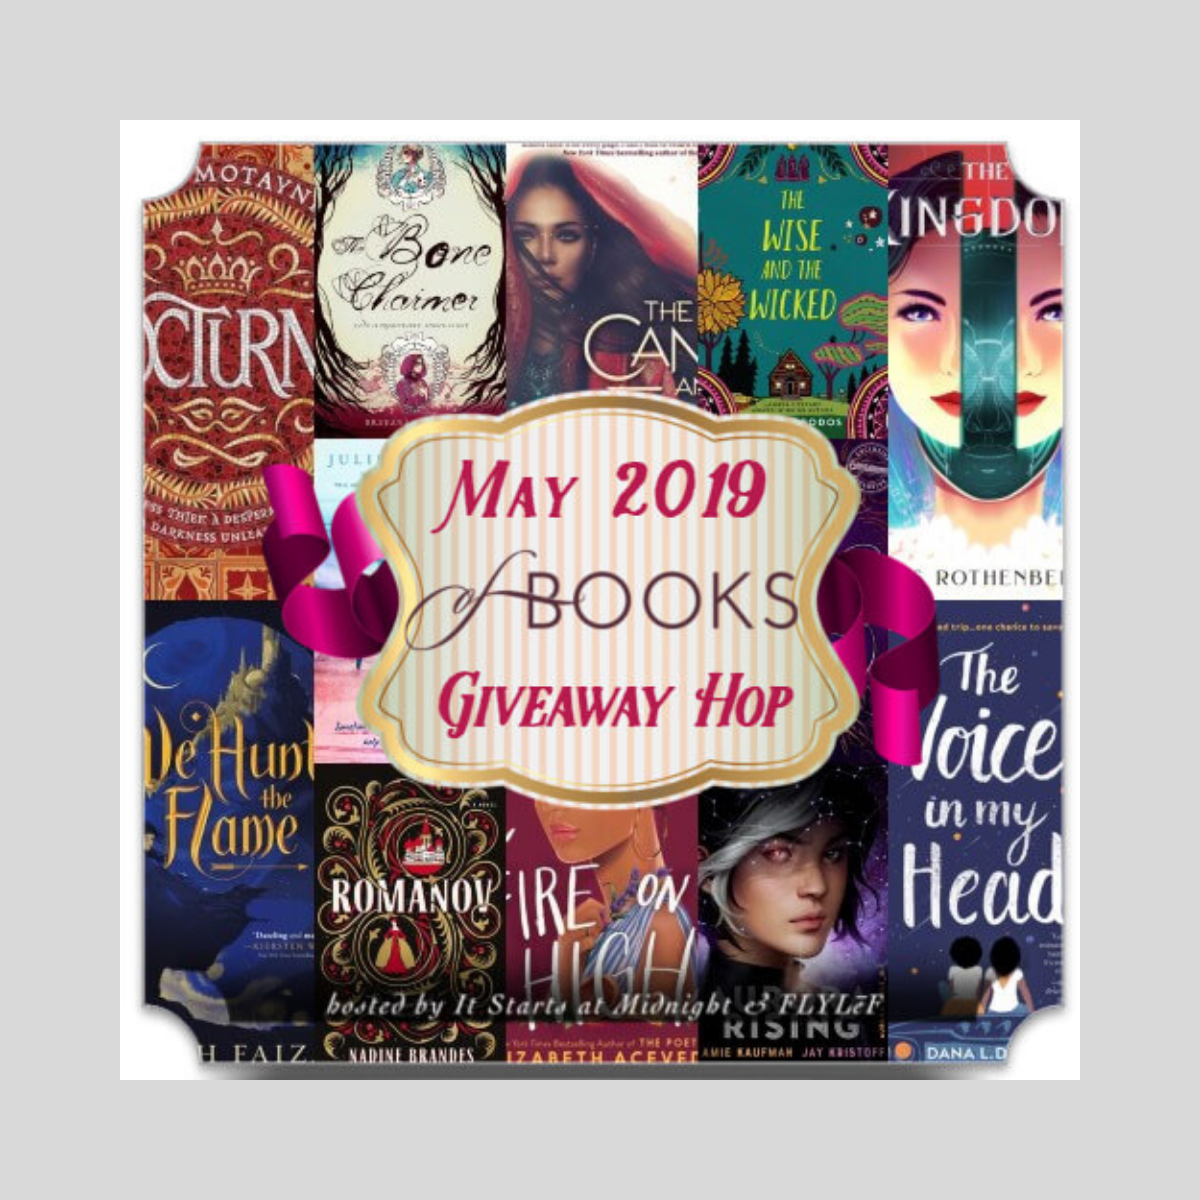 May 2019 Book Giveaway Hop